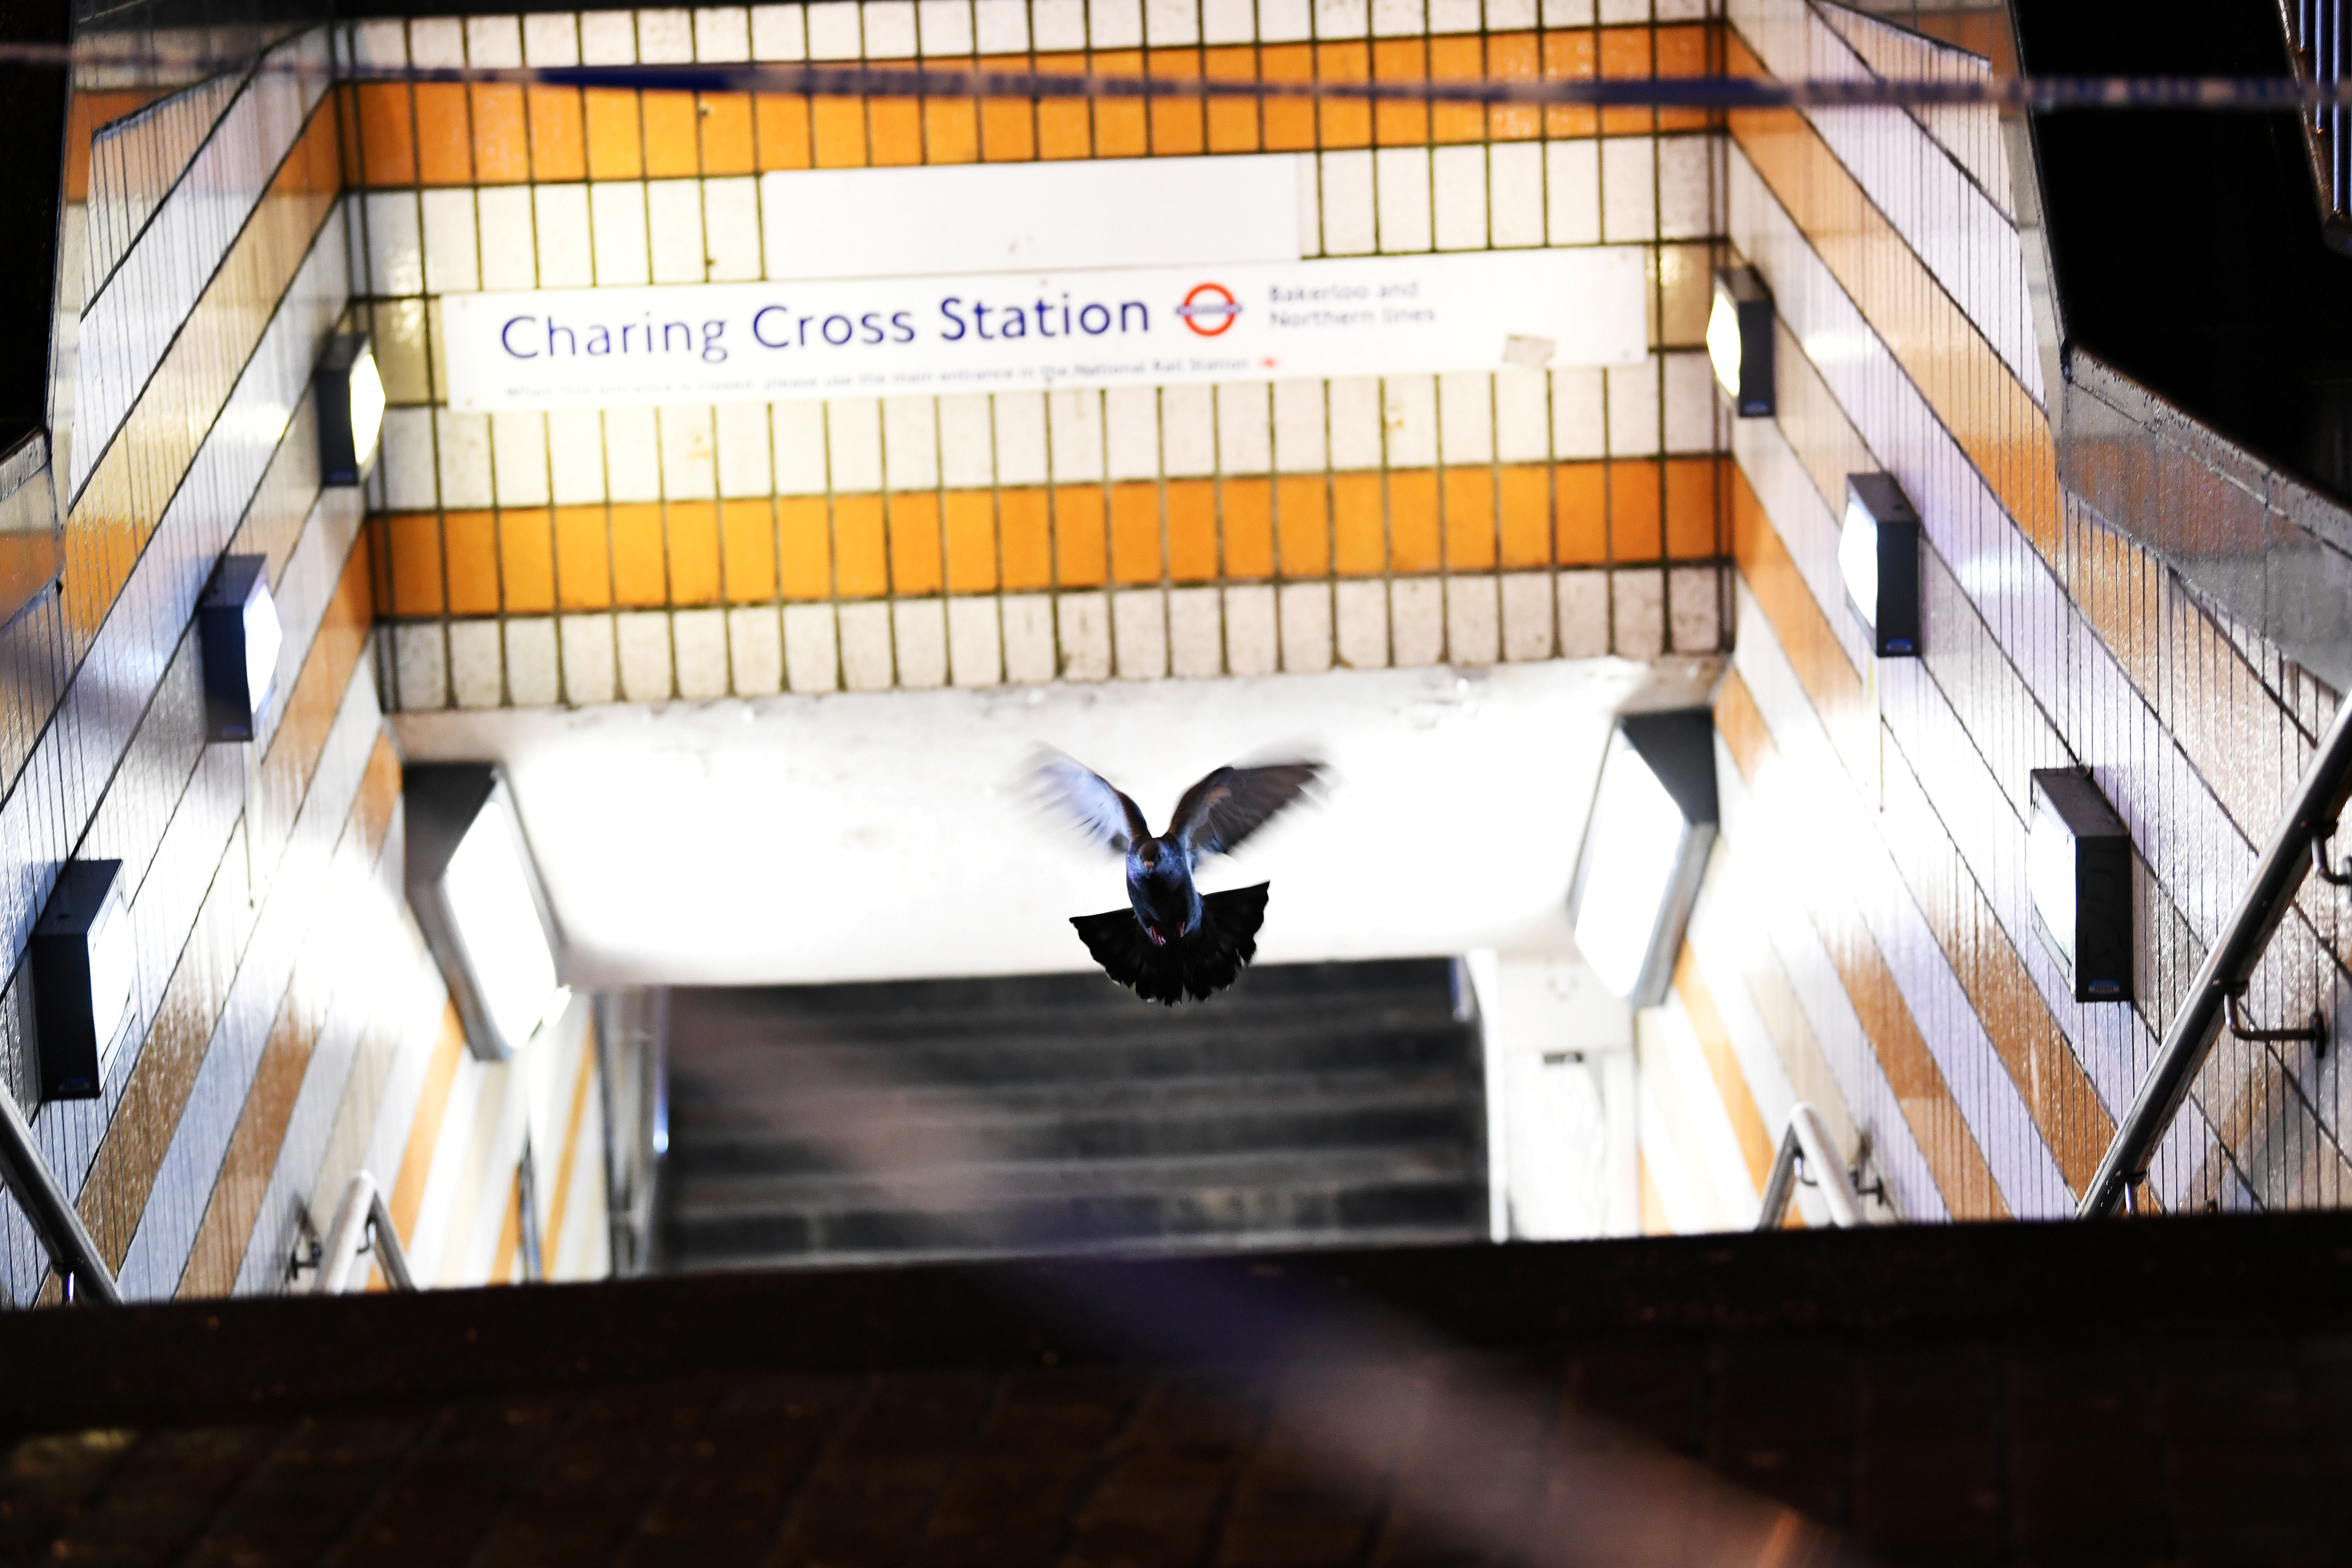 A pigeon flies out of a pedestrian subway at Charing Cross station after it was shut due to a gas leak, in London, Britain, Jan. 23, 2018.